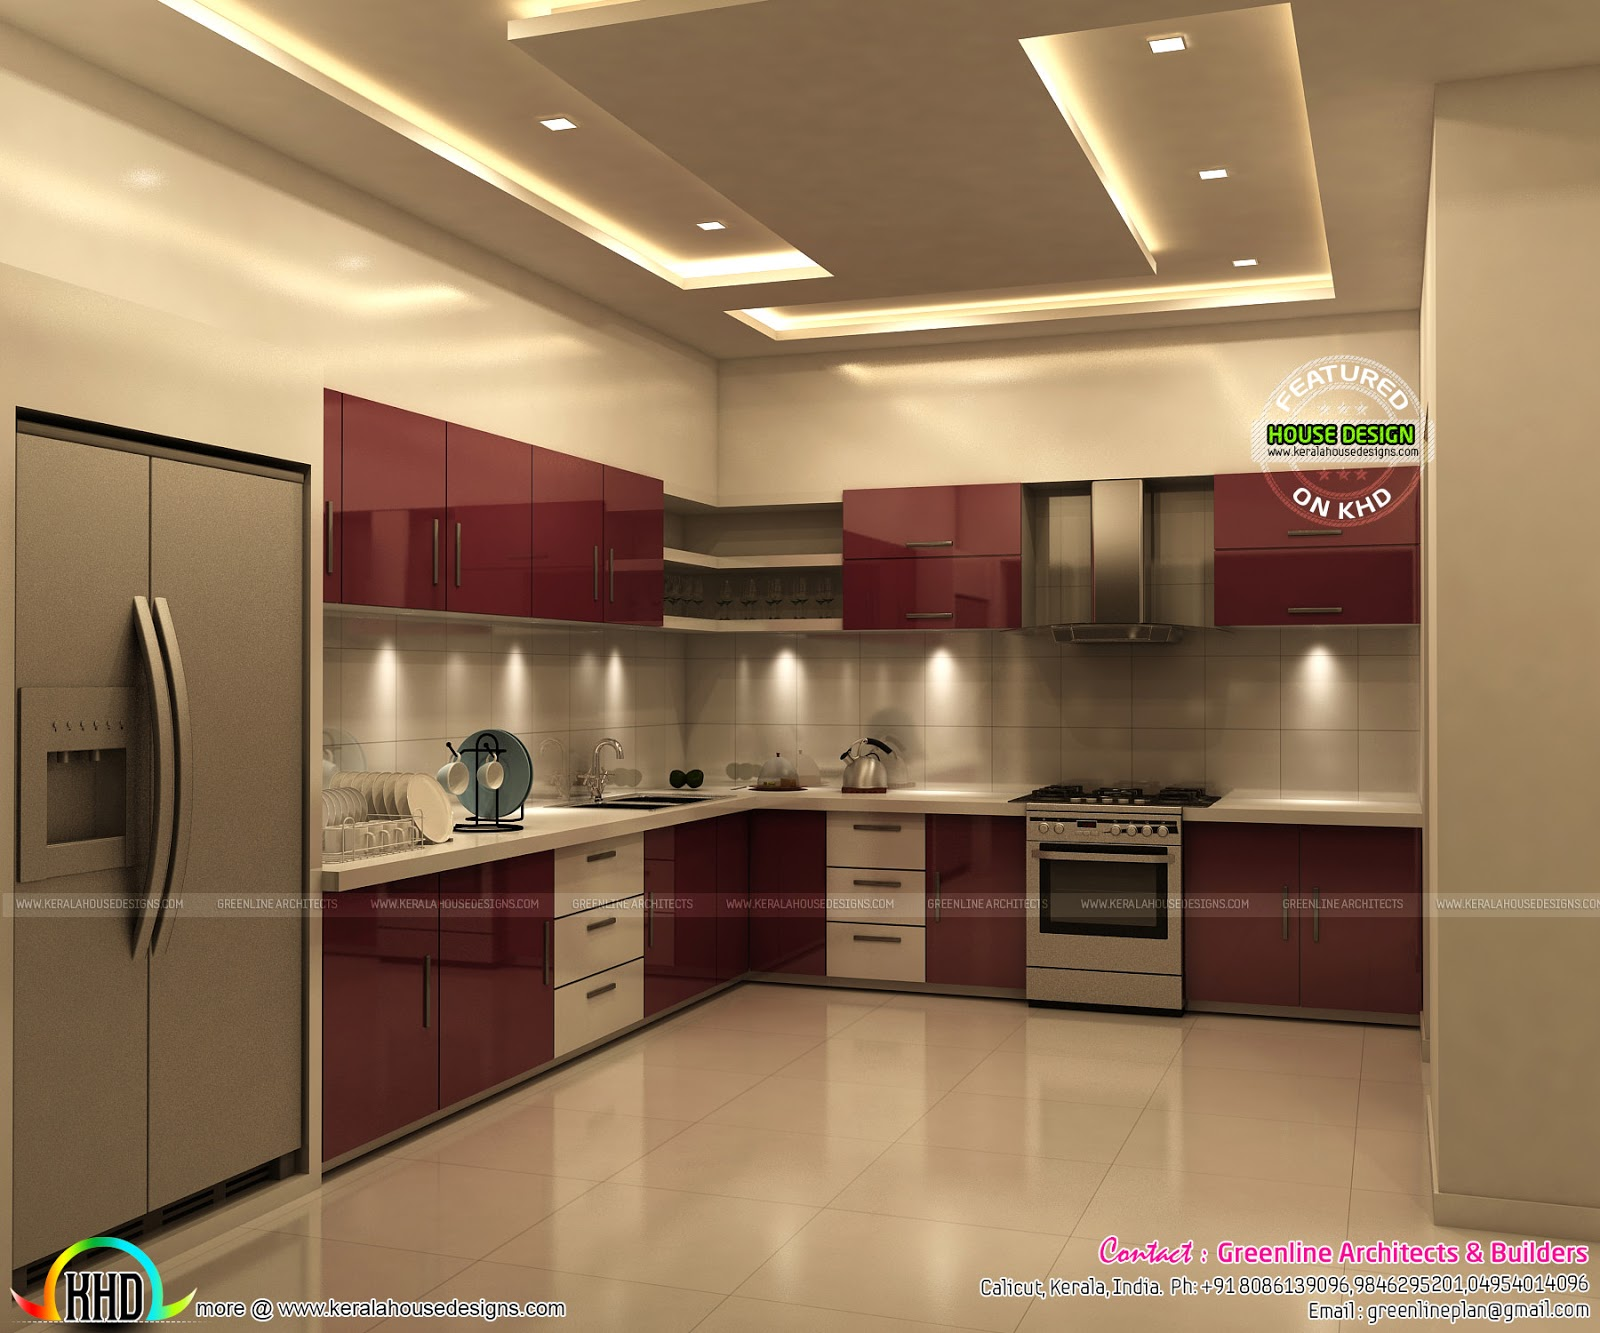 Superb kitchen and bedroom interiors kerala home design for Interior designs photos